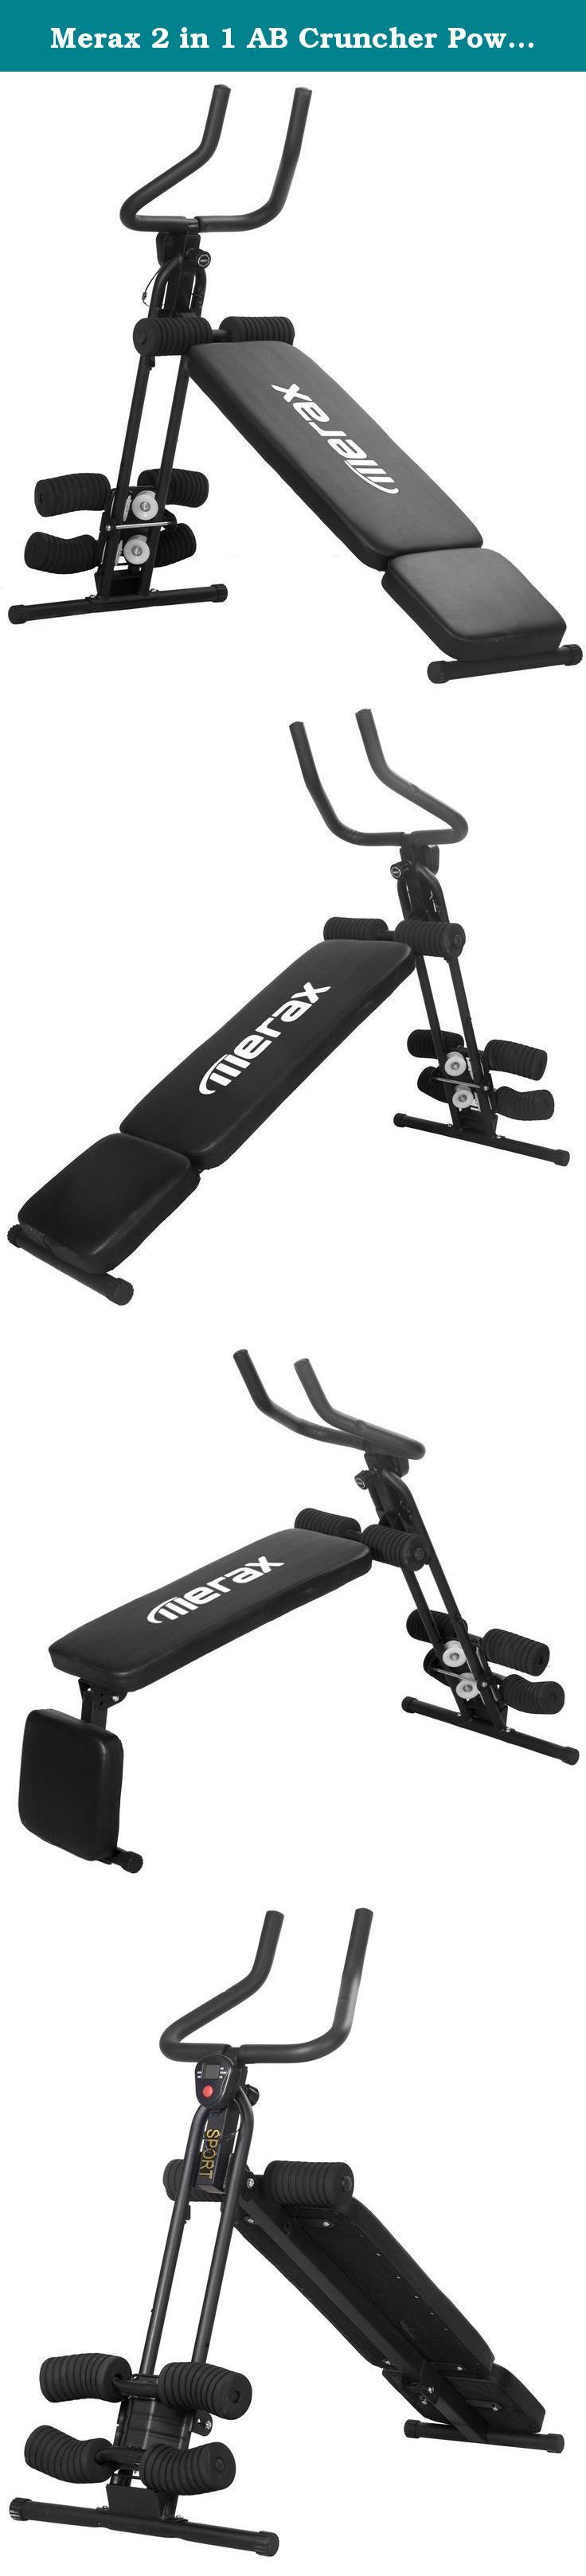 Merax 2 in 1 AB Cruncher Power Fitness Abdominal Trainer 5 Minute Shaper Fitness Core Toner with Sit-up Bench. Get in shape the easy way with the Merax Abdominal Trainer. Just spend five minutes a day and youll simply be surprised to see the weight loss r